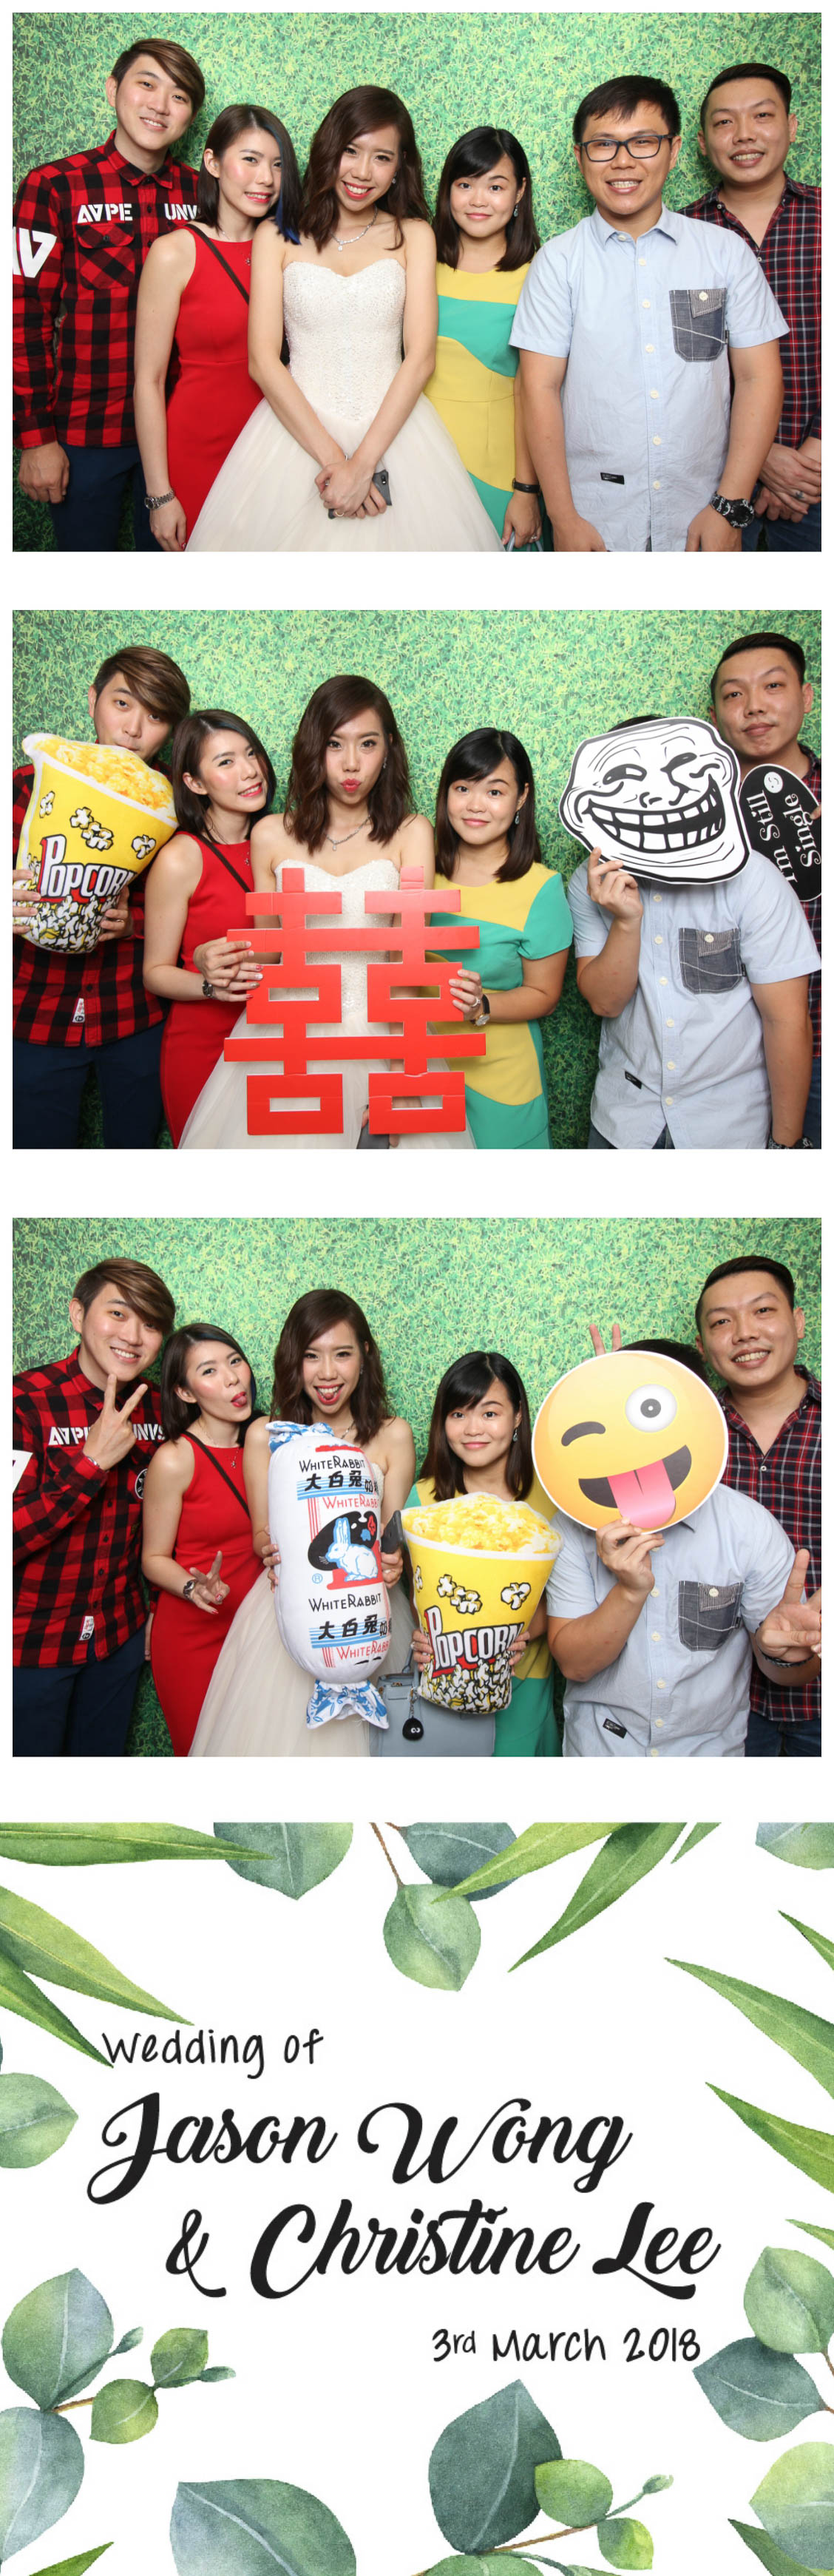 Photobooth 0302-13